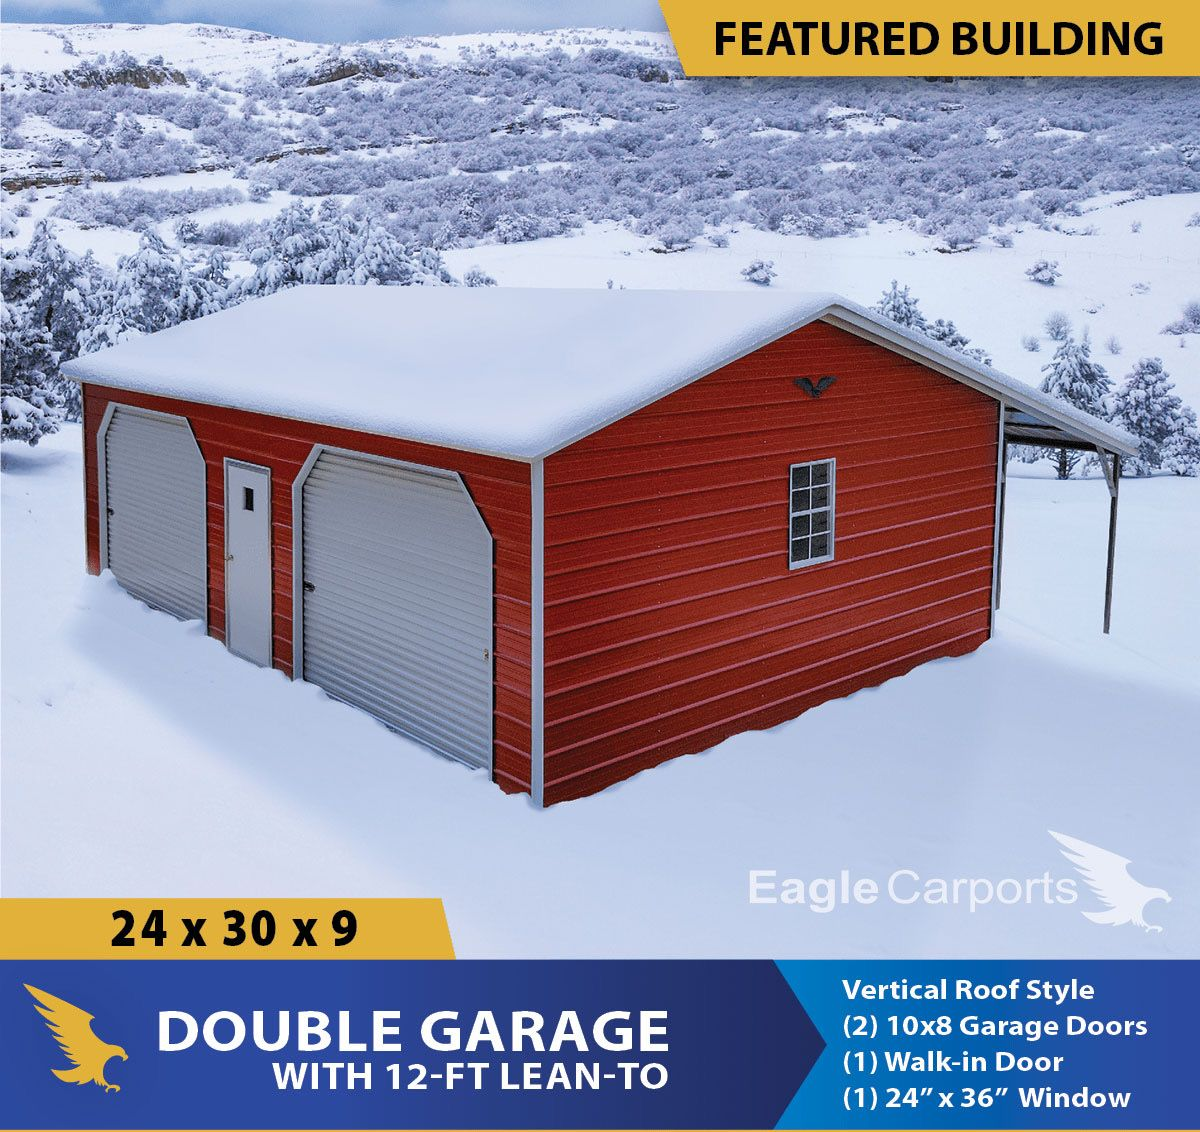 This week's featured building 24x30x9 Vertical Roof